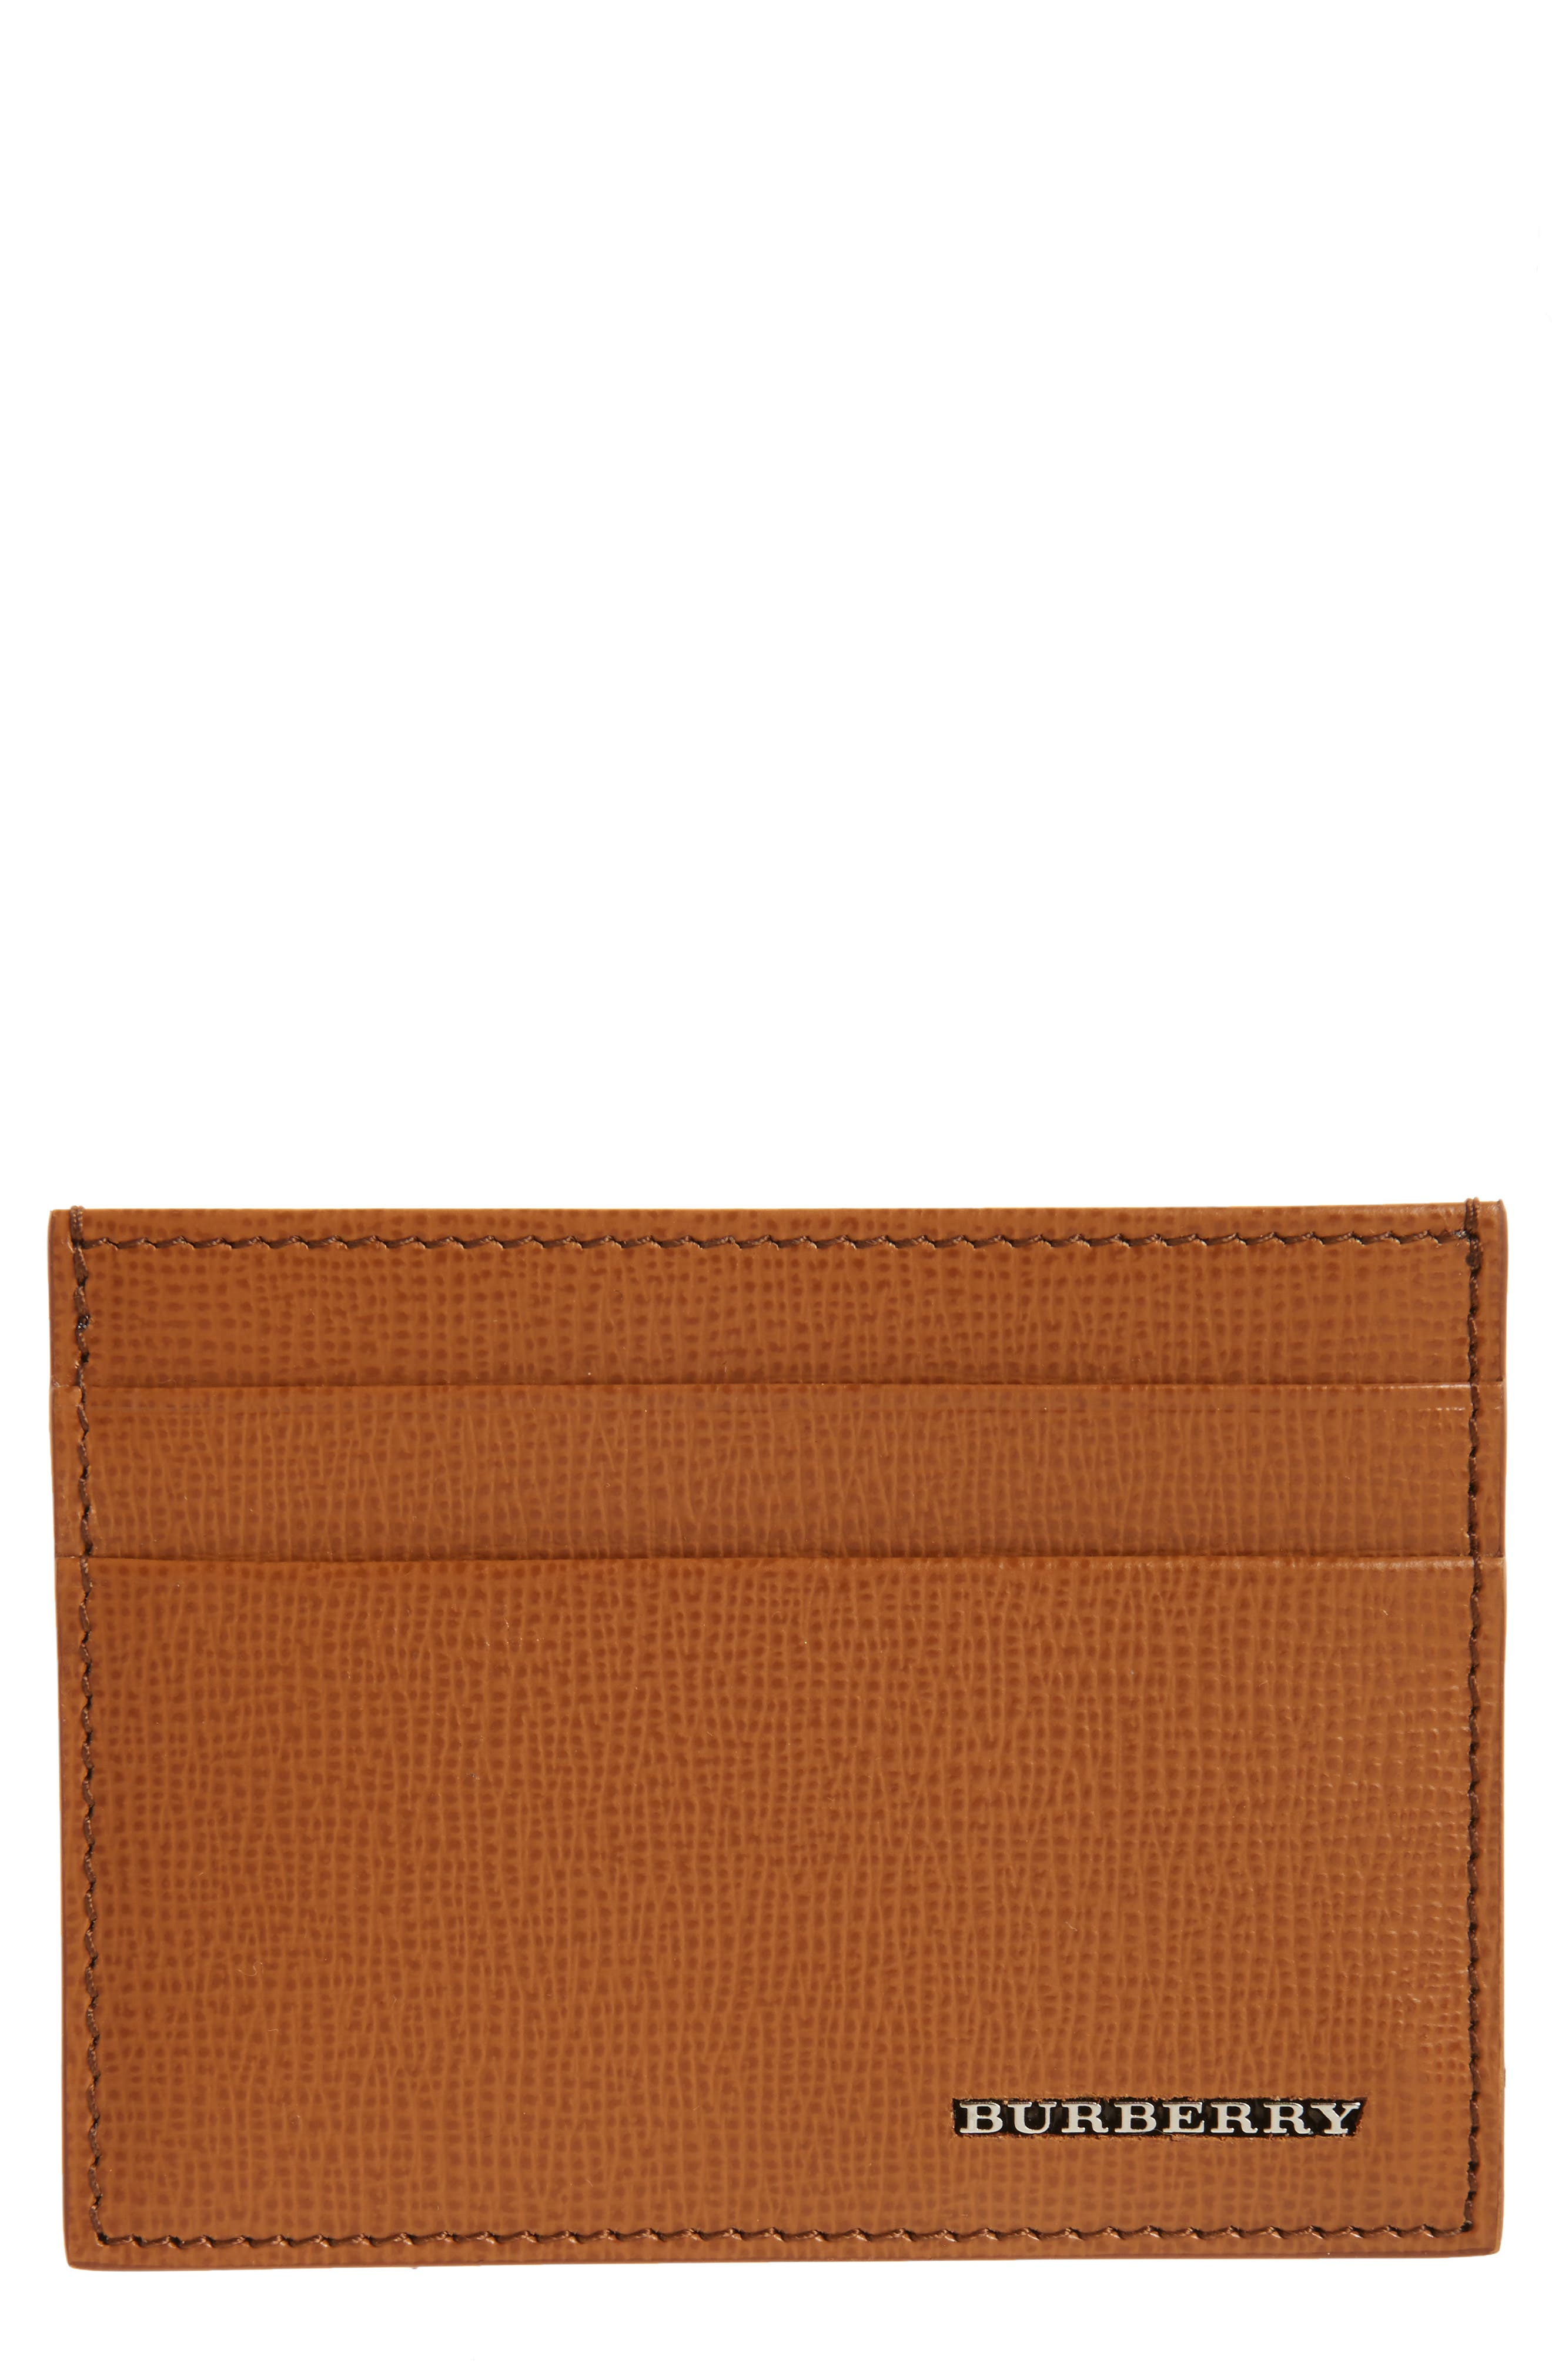 Burberry Sandon Leather Card Case